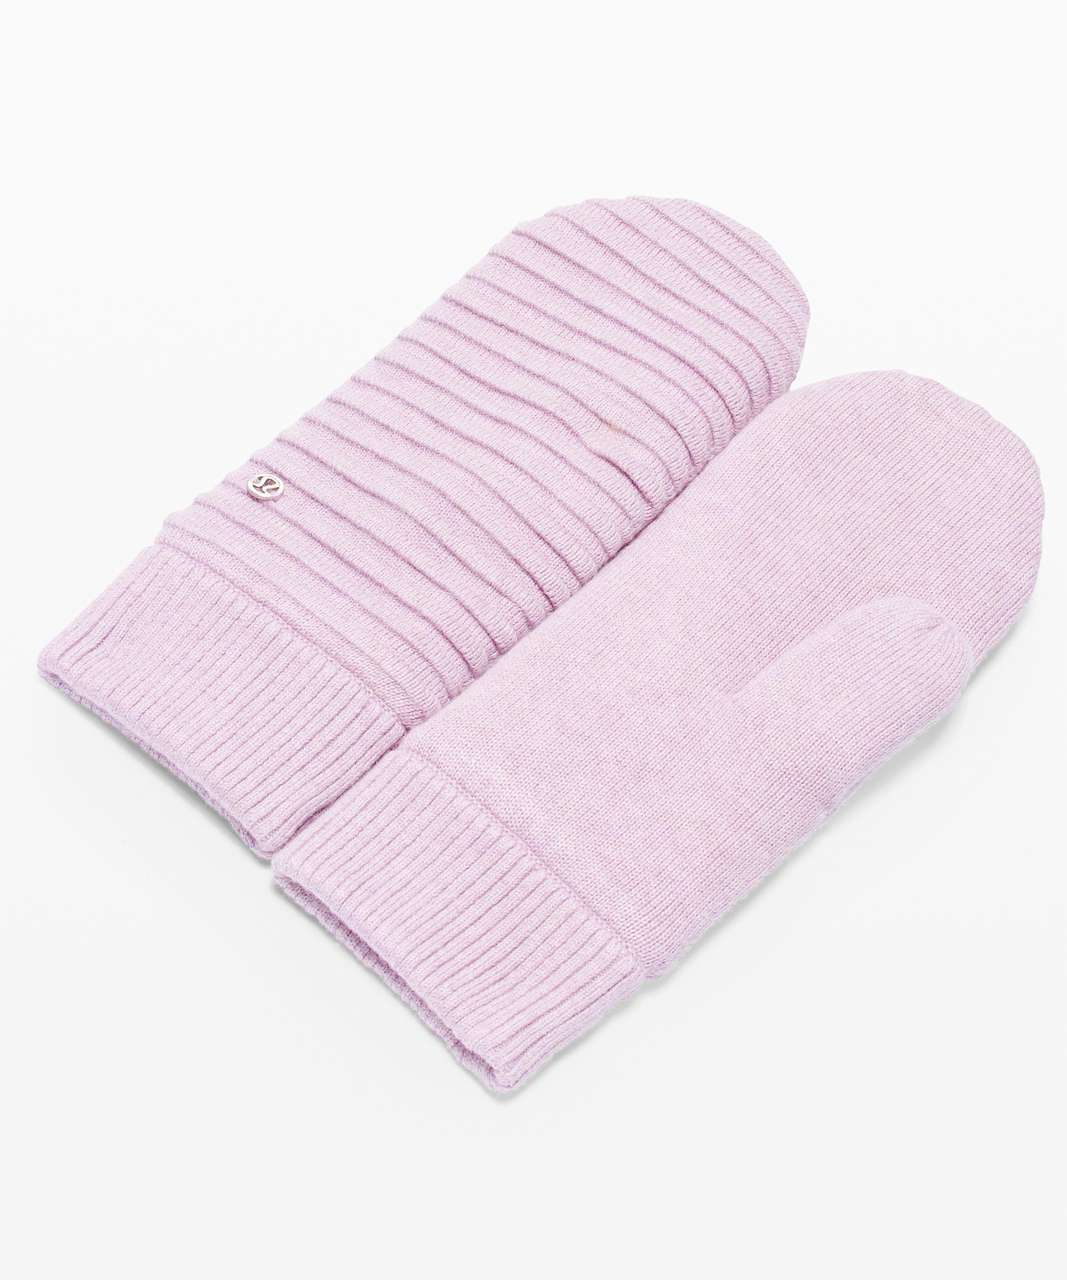 Lululemon Sweet and Sherpa Mittens - Heathered Pink Taupe